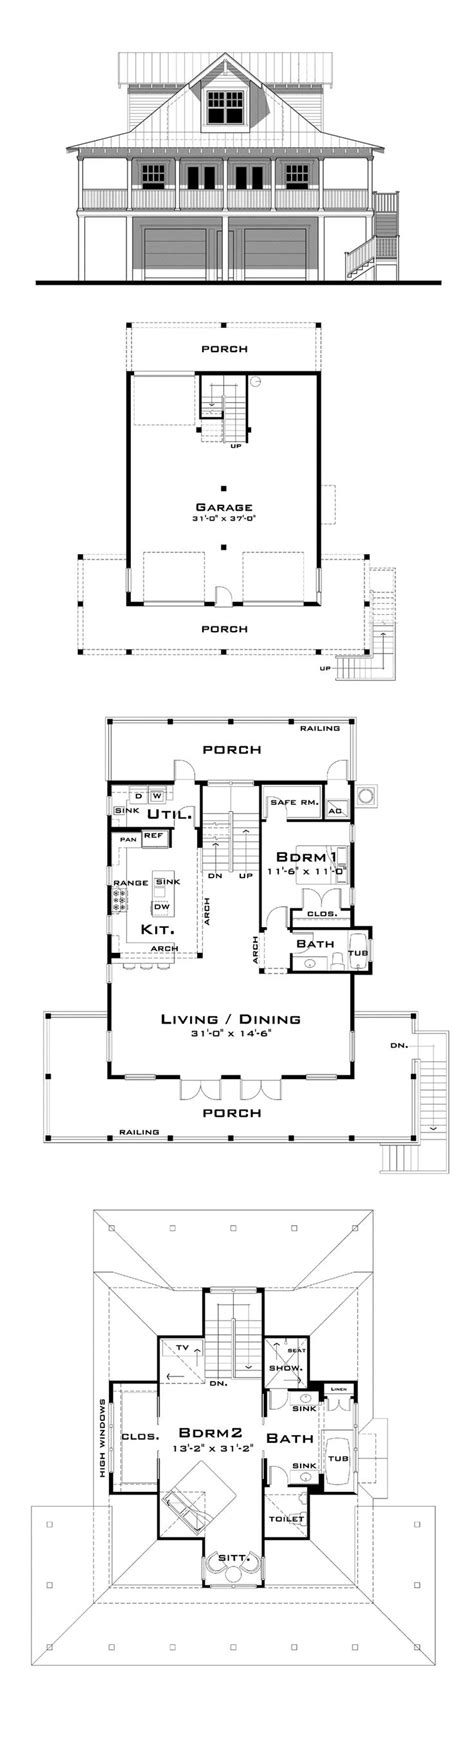 cracker style home floor plans 16 best images about florida cracker house plans on